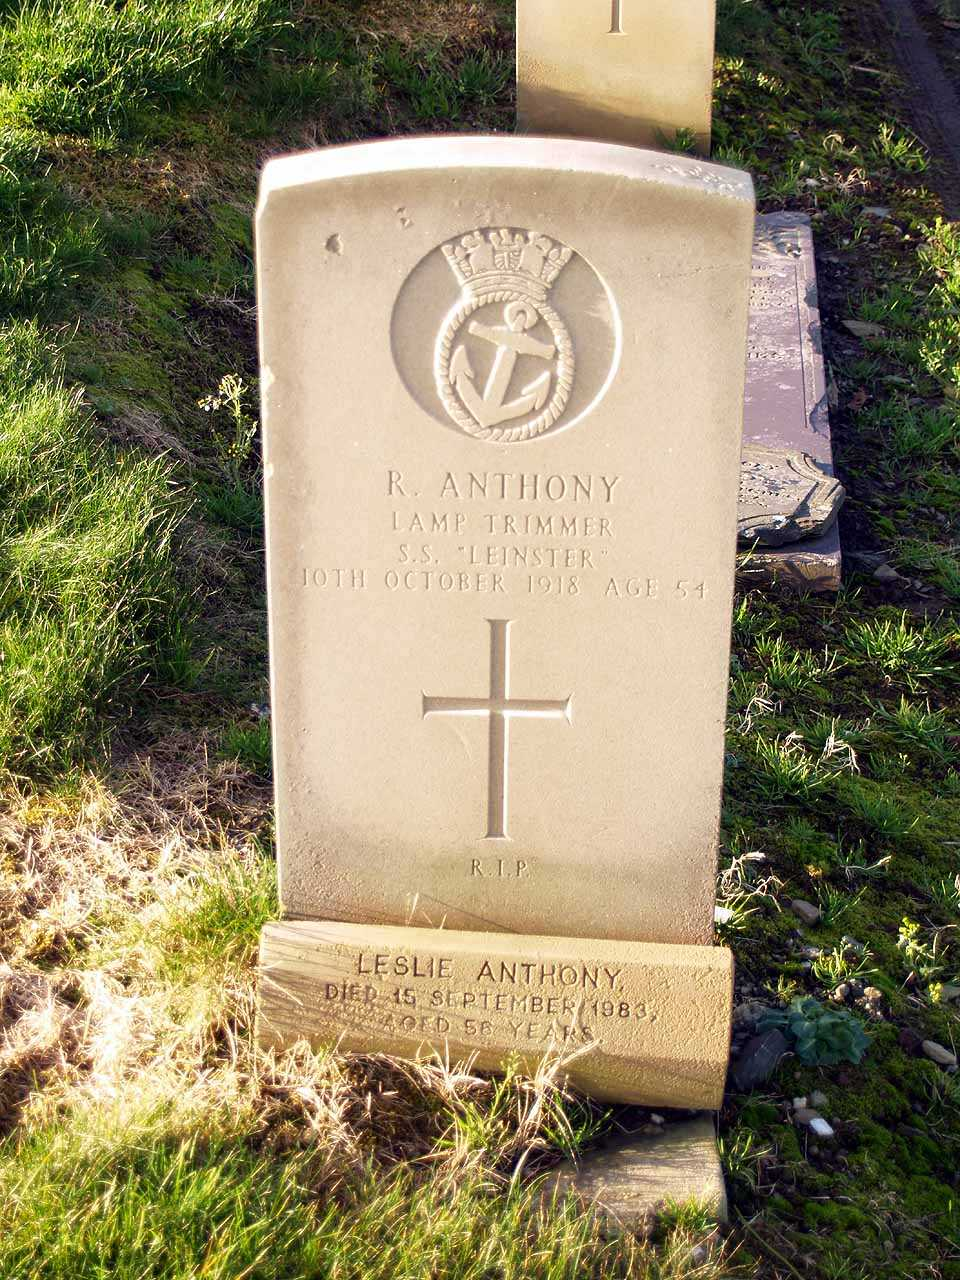 Robert Anthony - lost on the S.S. Leinster in 1918 aged 54